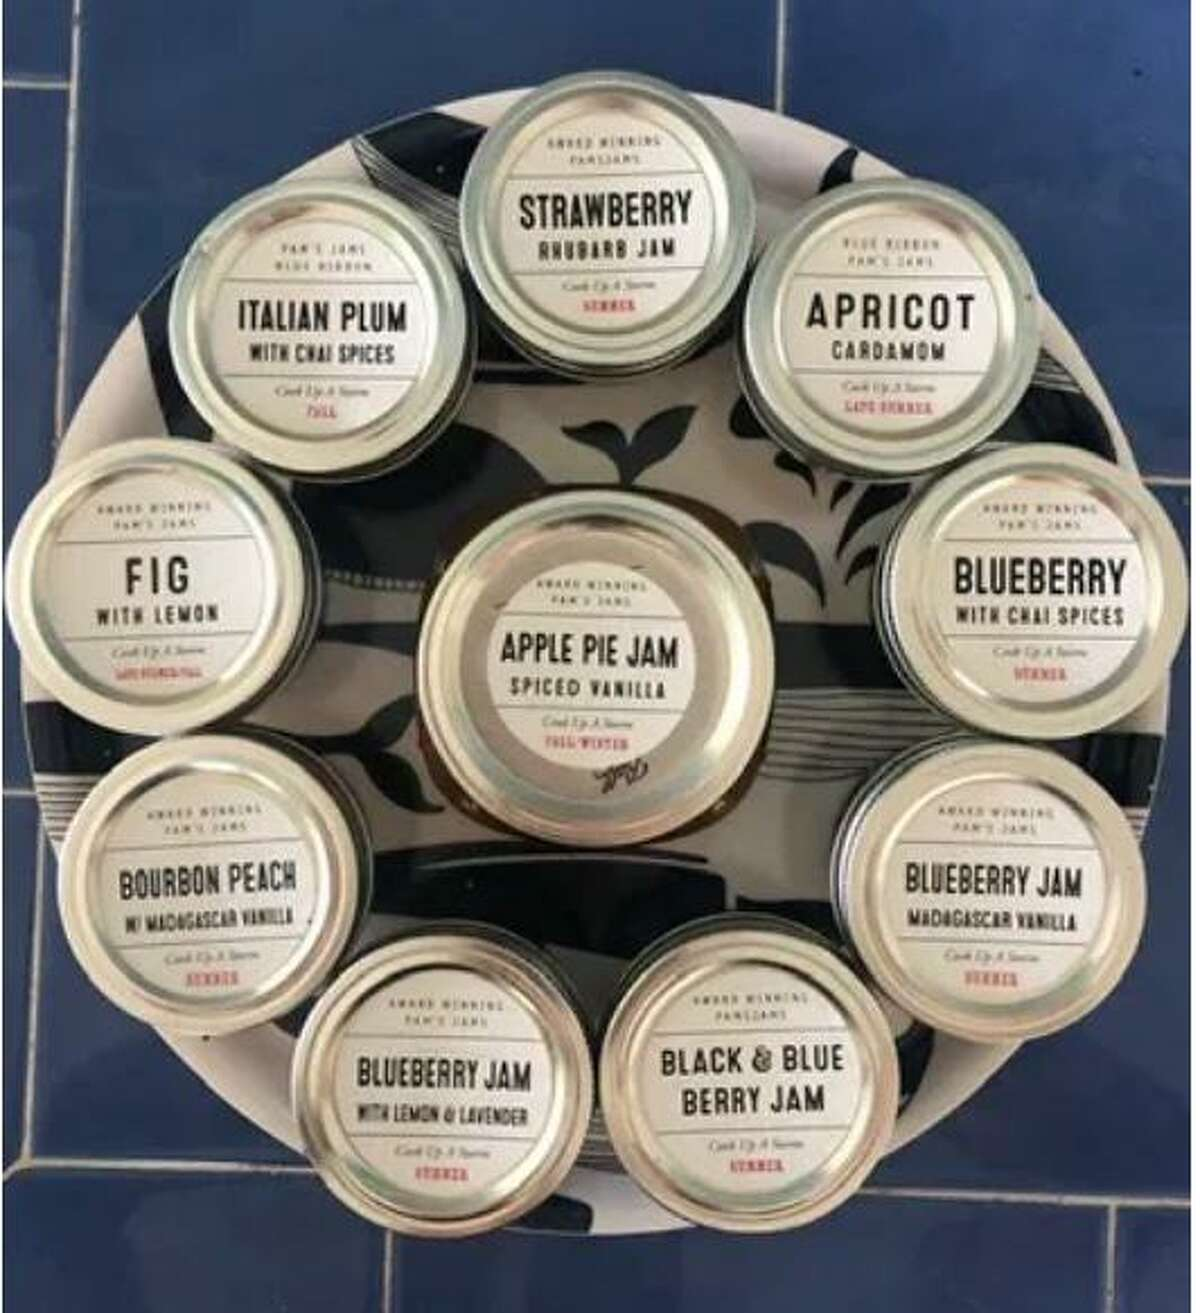 A variety of fresh jams and jellies by Pam's Jams will be on sale at the Holiday Market at Cannon Grange in Wilton on Saturday, Dec. 5 from 10 to 4.